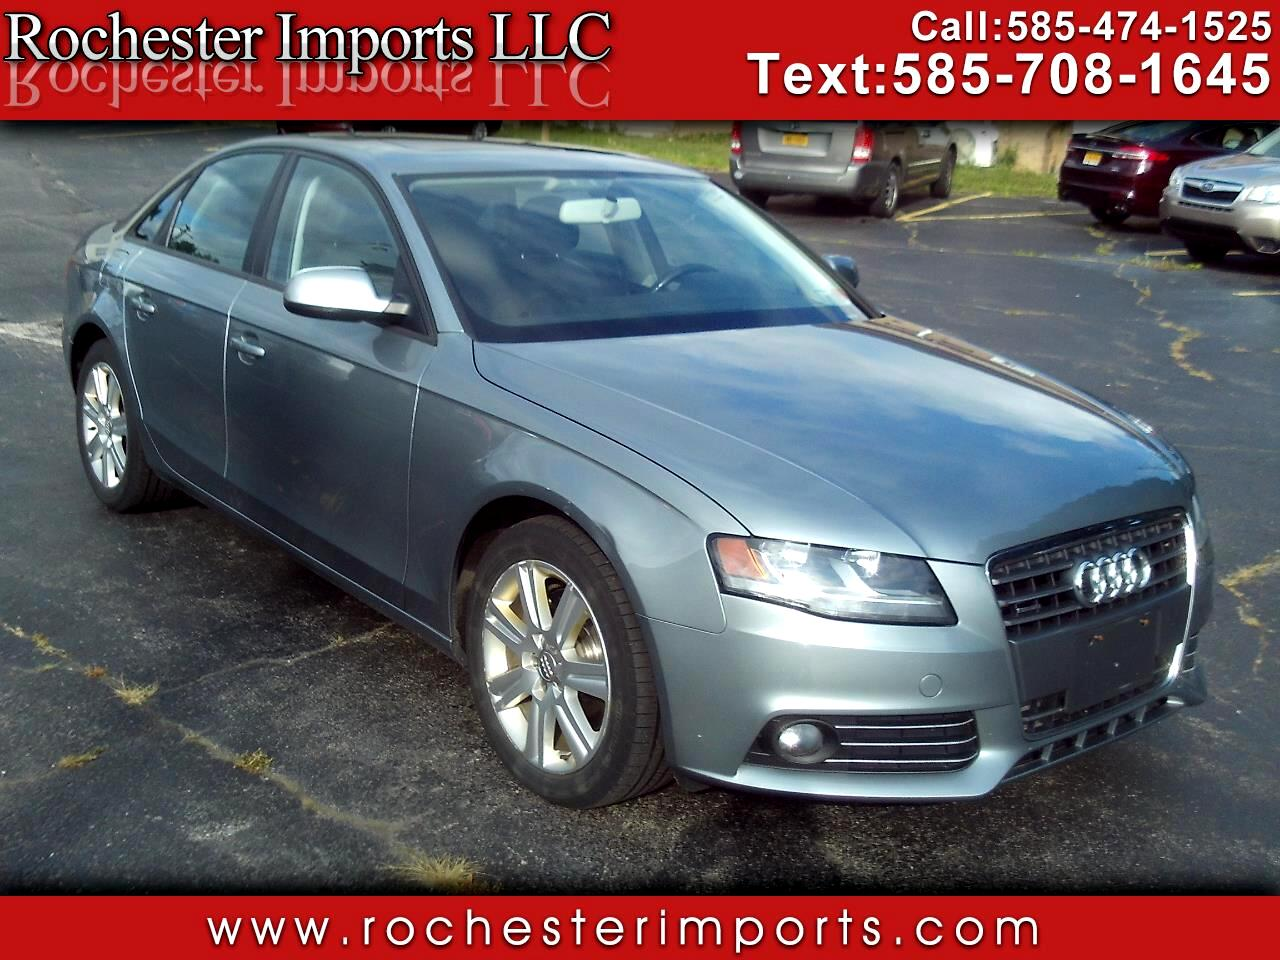 Used 2011 Audi A4 for Sale in Webster, NY 14580 Rochester